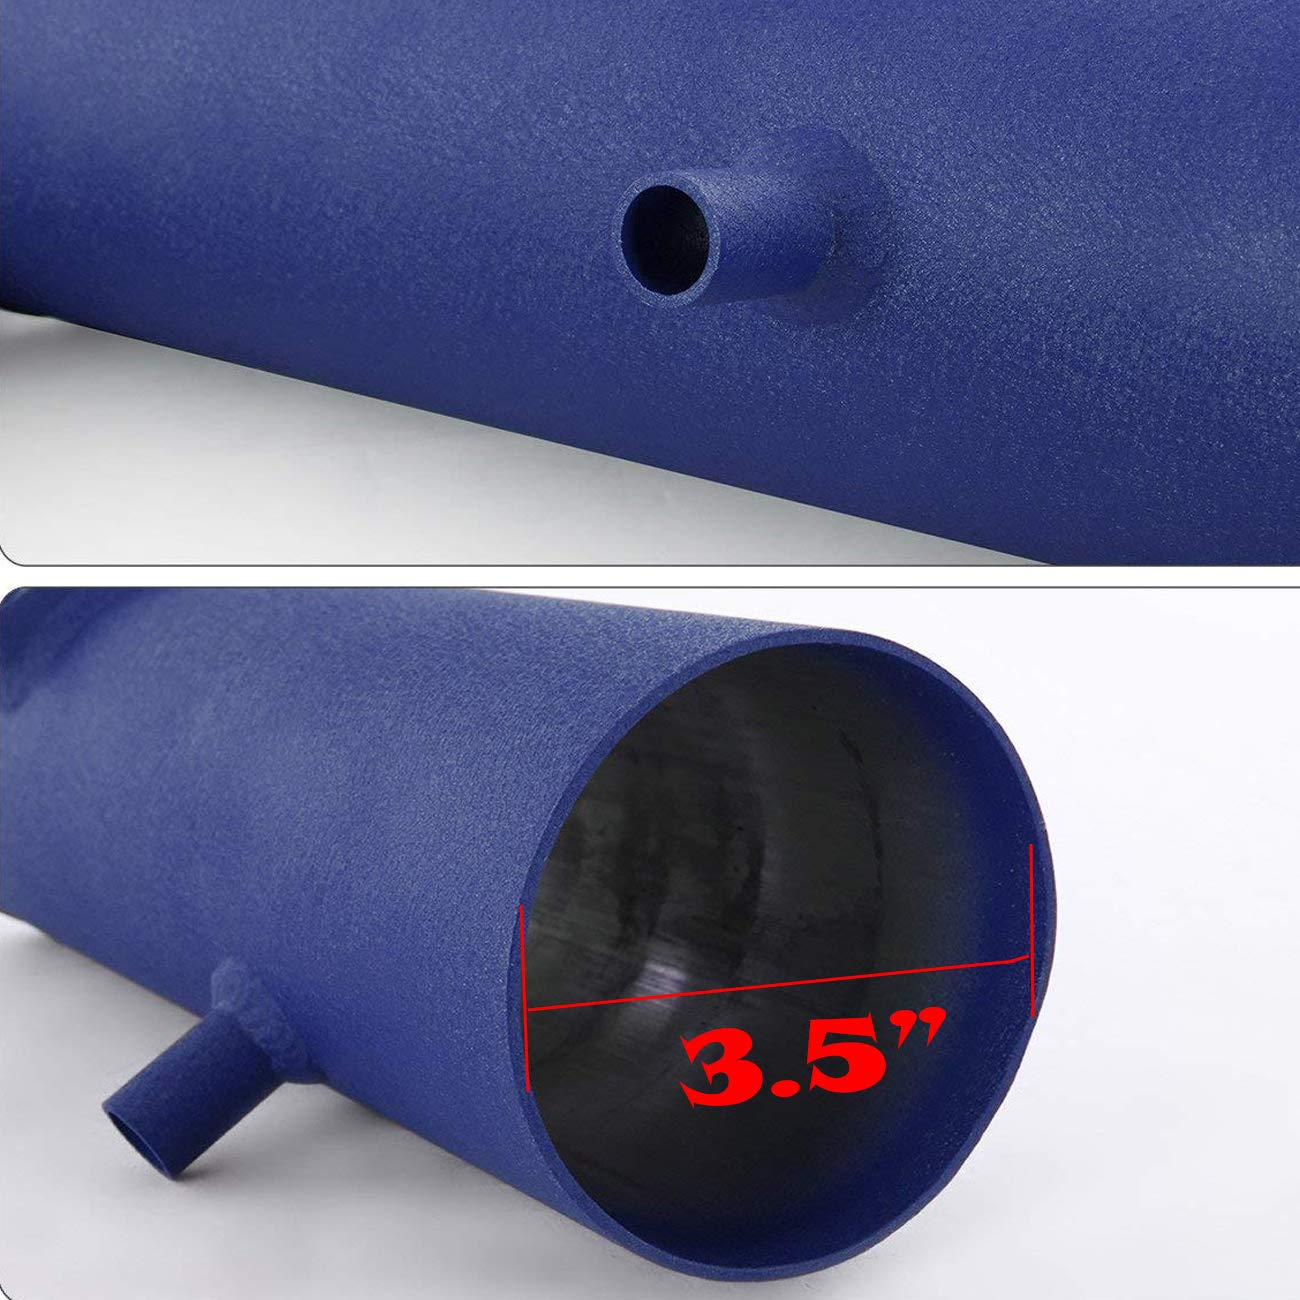 For 2012-2015 Chevy Camaro 3.5 Inch Aluminum High Flow Air Intake Kit Blue Heat Shield Pipe with Filter V6 3.6L Only